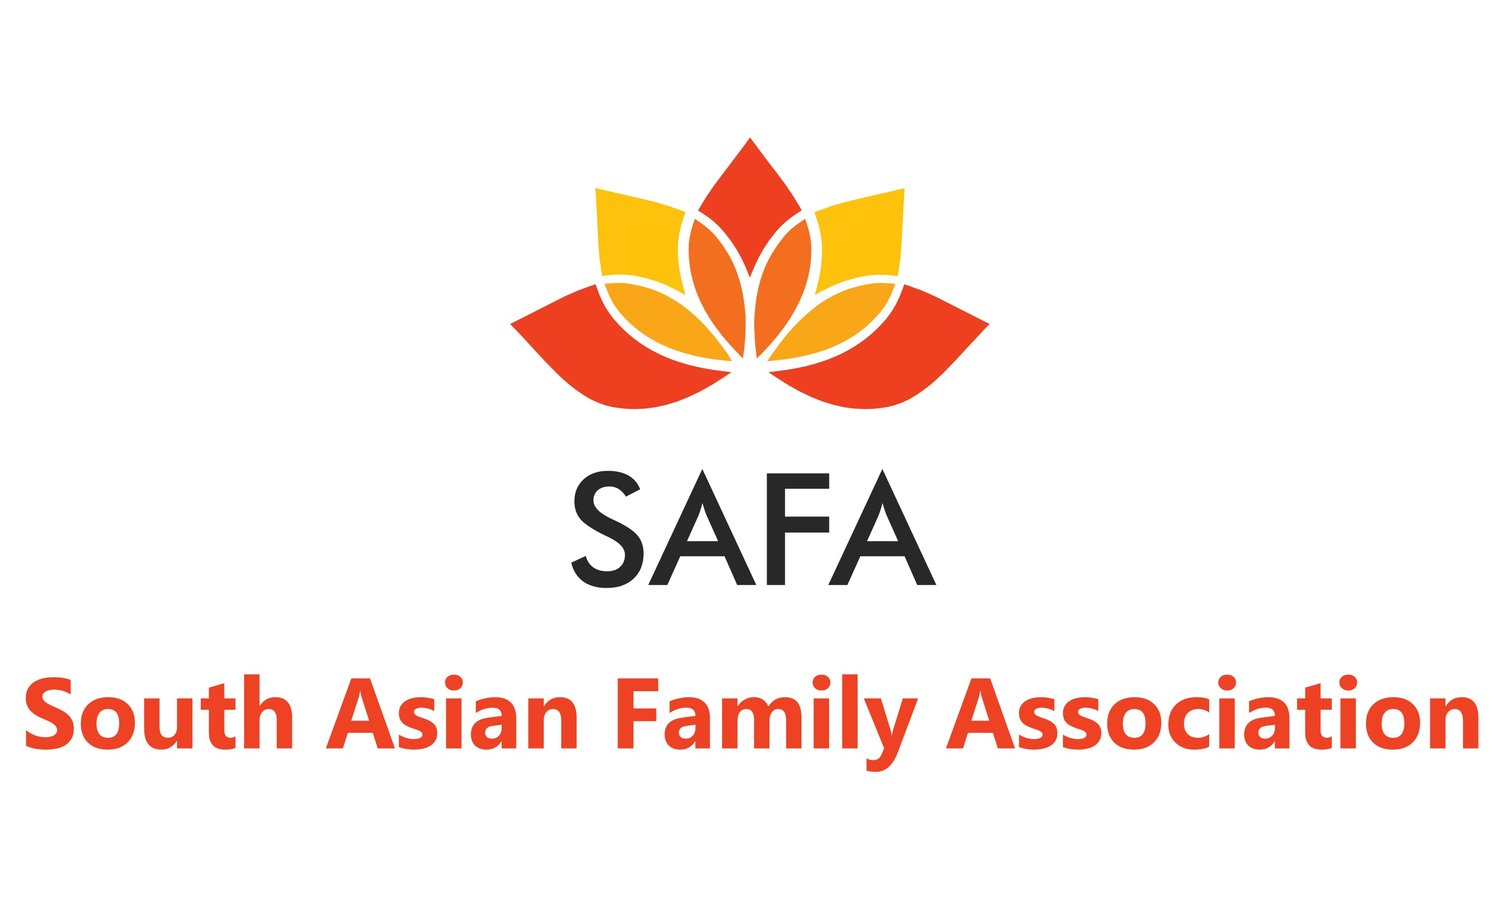 South Asian Family Association